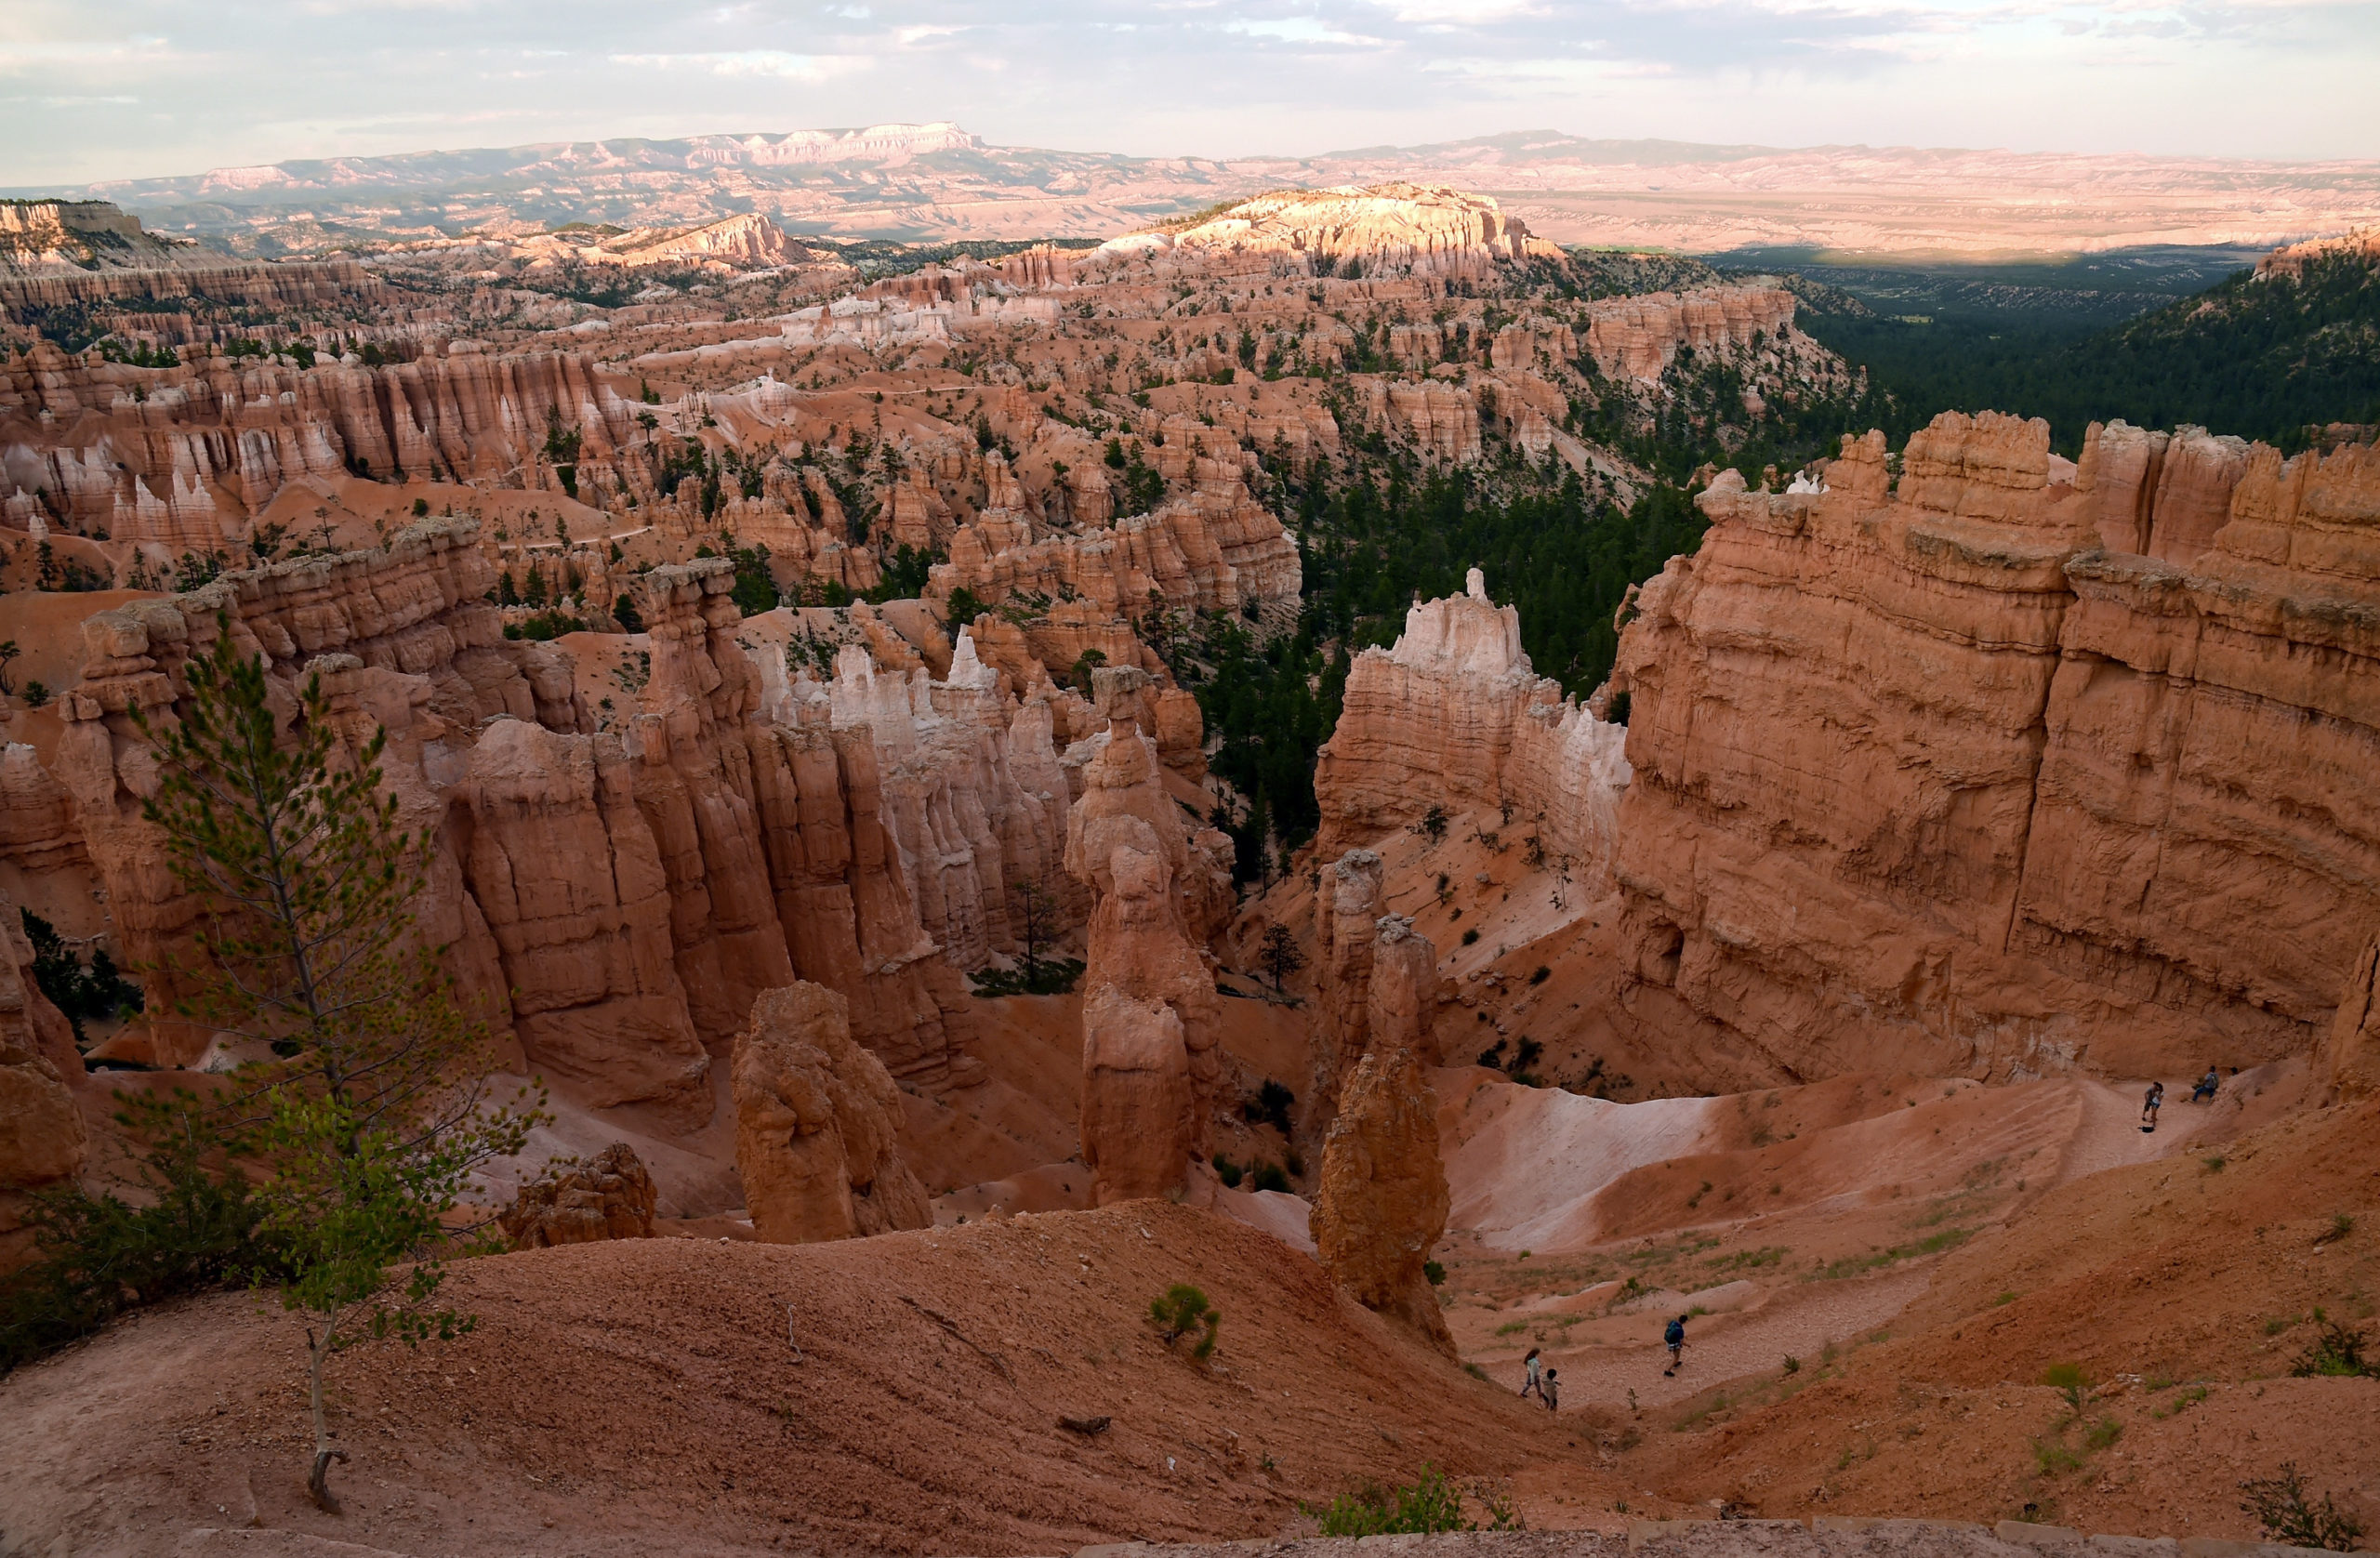 BRYCE CANYON NATIONAL PARK, UT - AUGUST 12: Visitors walk along the Navajo Loop Trail in front of hoodoos as viewed from Sunset Point overlooking Bryce Amphitheater on August 12, 2016 in Bryce Canyon National Park, Utah. (Photo by Ethan Miller/Getty Images)